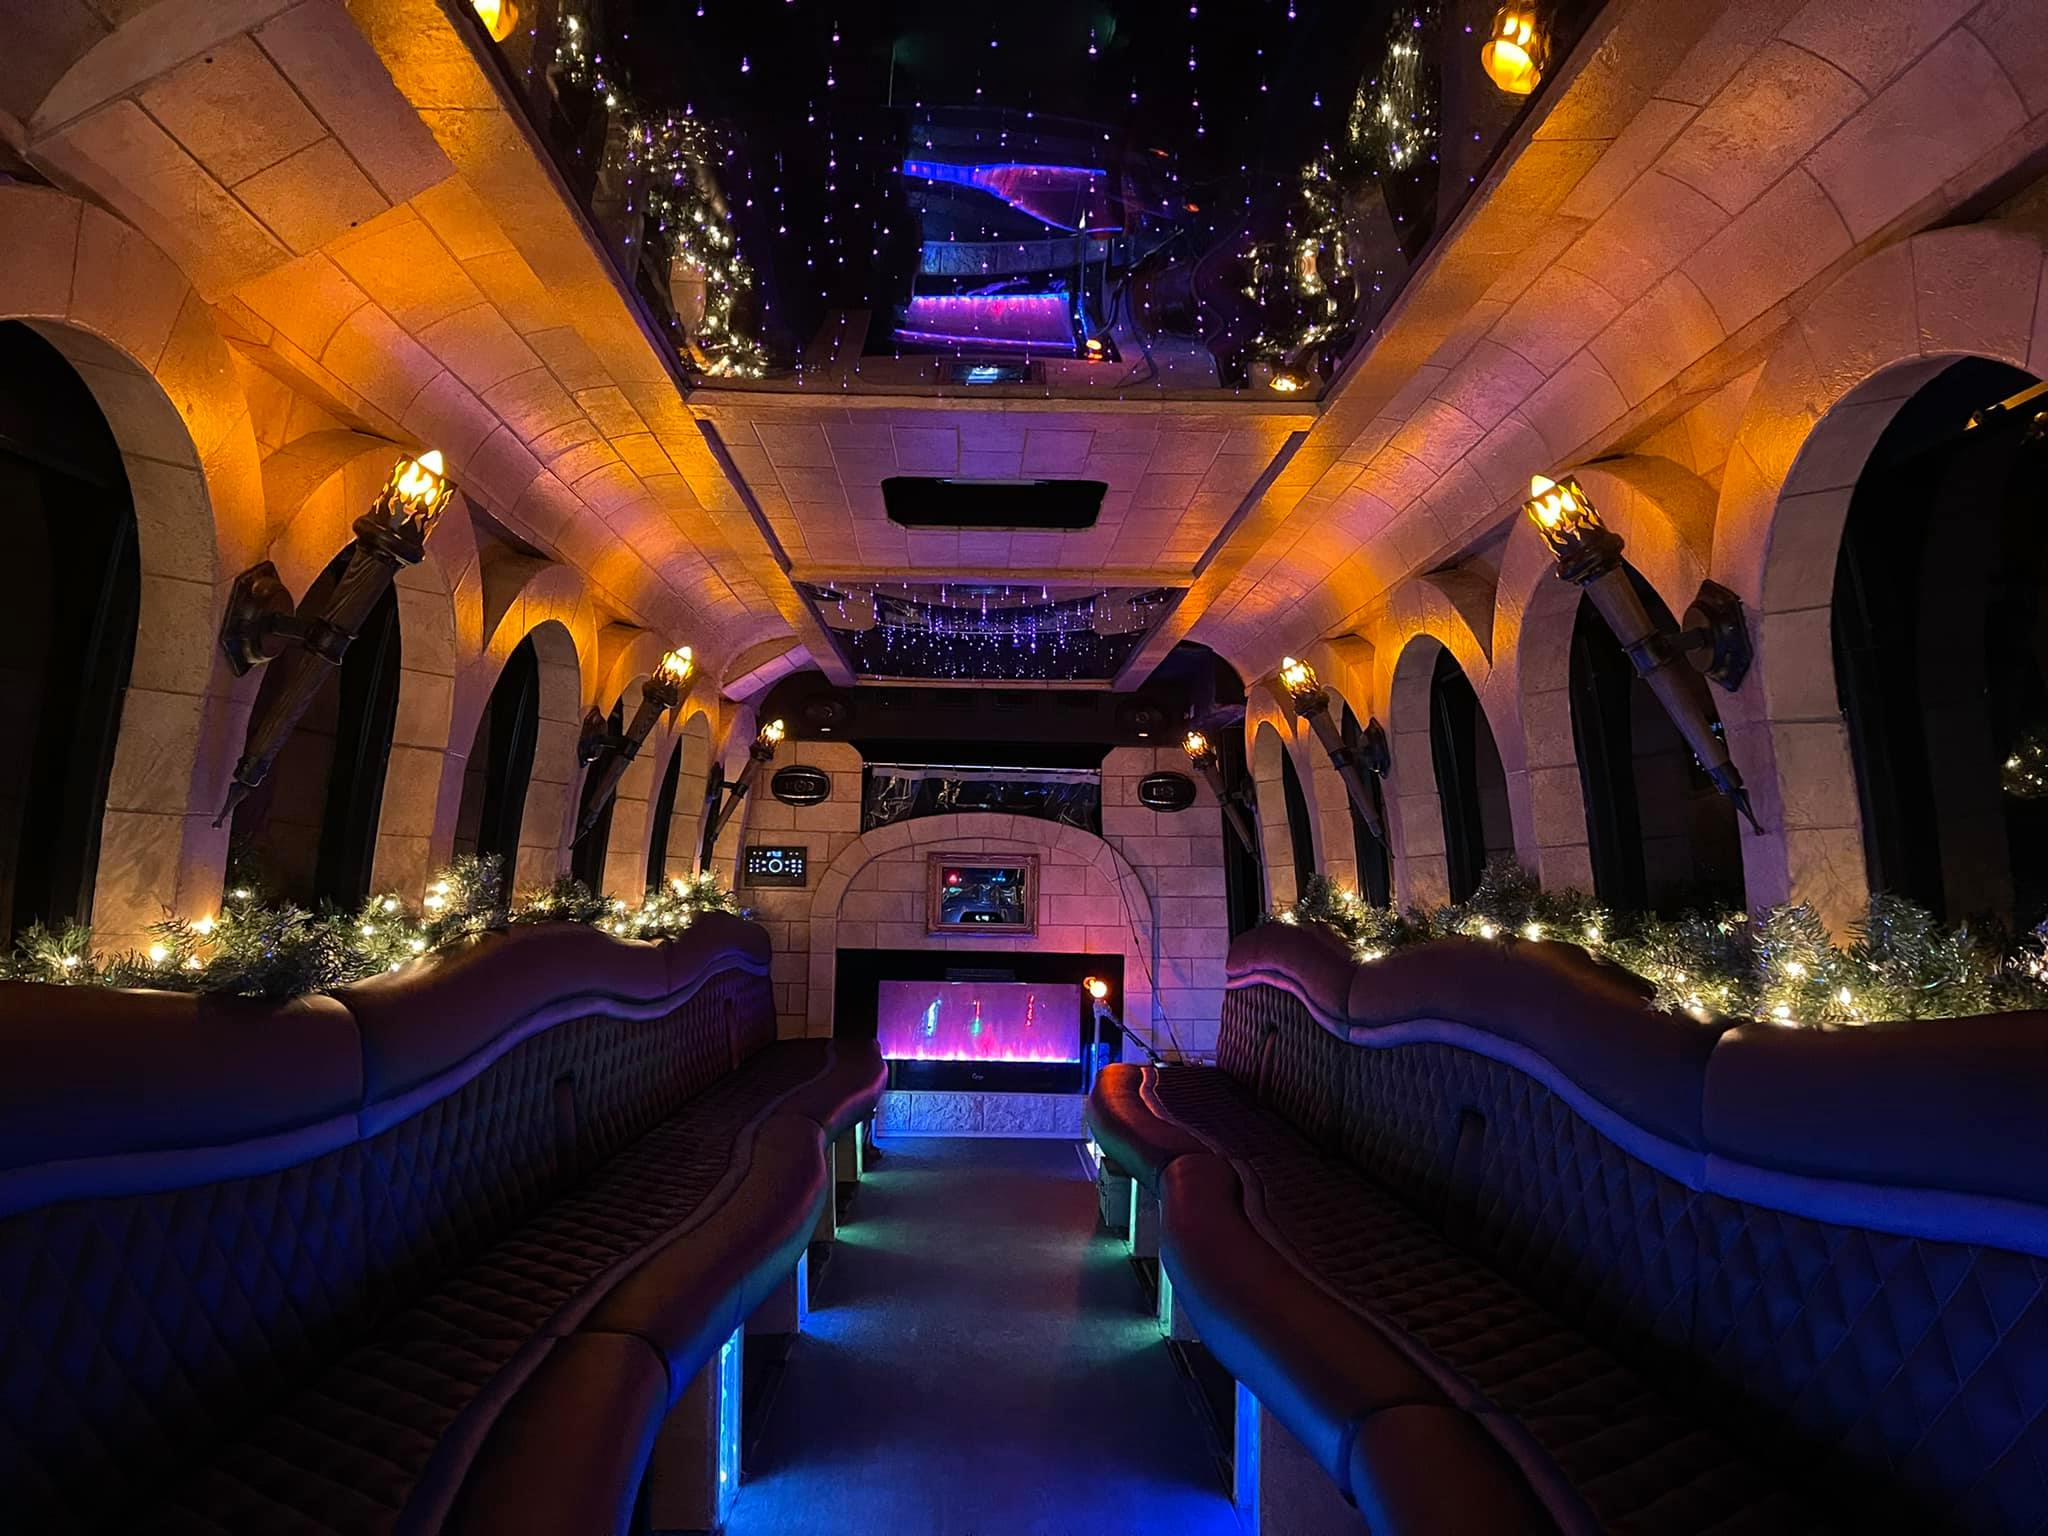 Castle Dreamliner Party Bus Fireplace